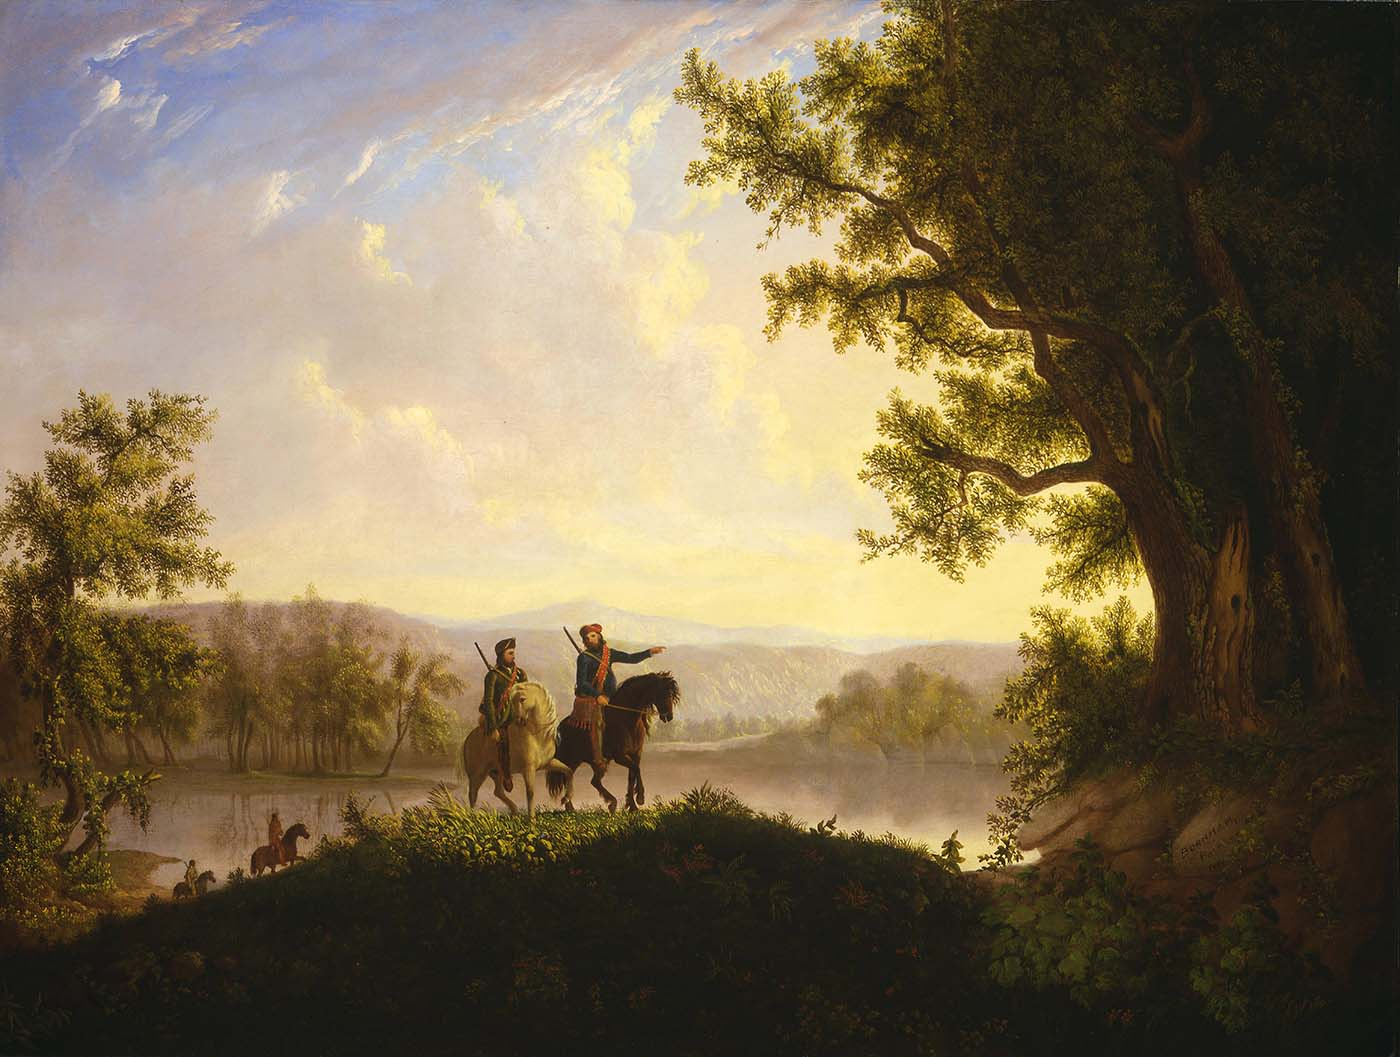 """Thomas Mickell Burnham (1818-1866). """"The Lewis and Clark Expedition,"""" ca. 1850. Oil on canvas, 36.125 x 48.5 inches. Museum purchase. 21.78"""